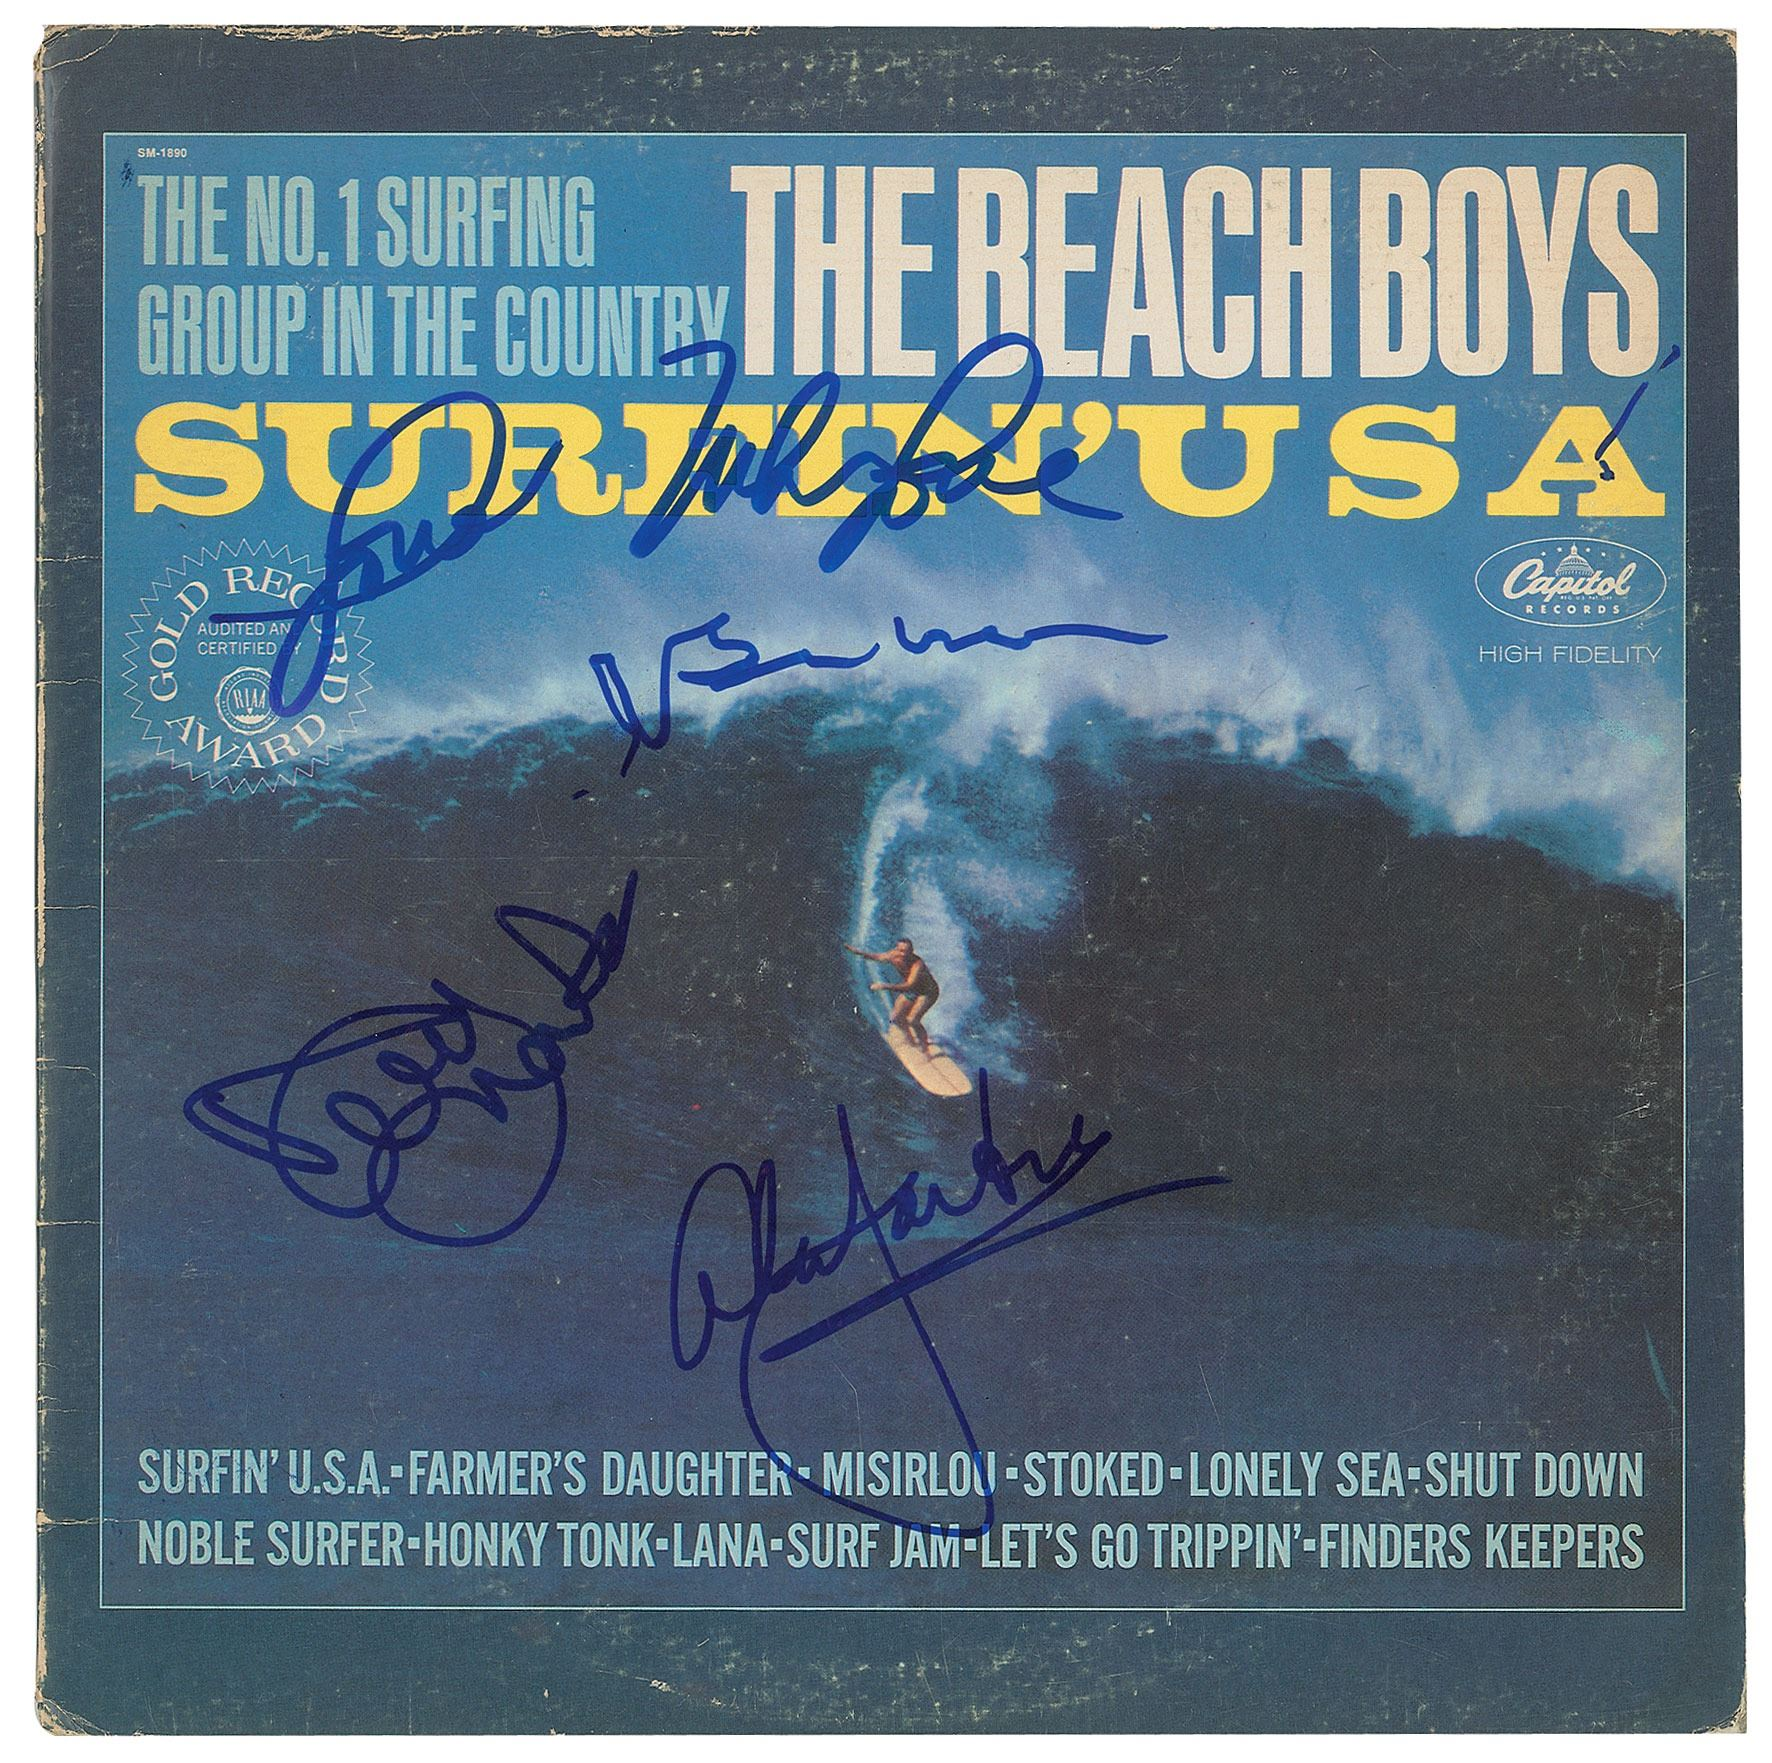 The Beach Boys Signed Album